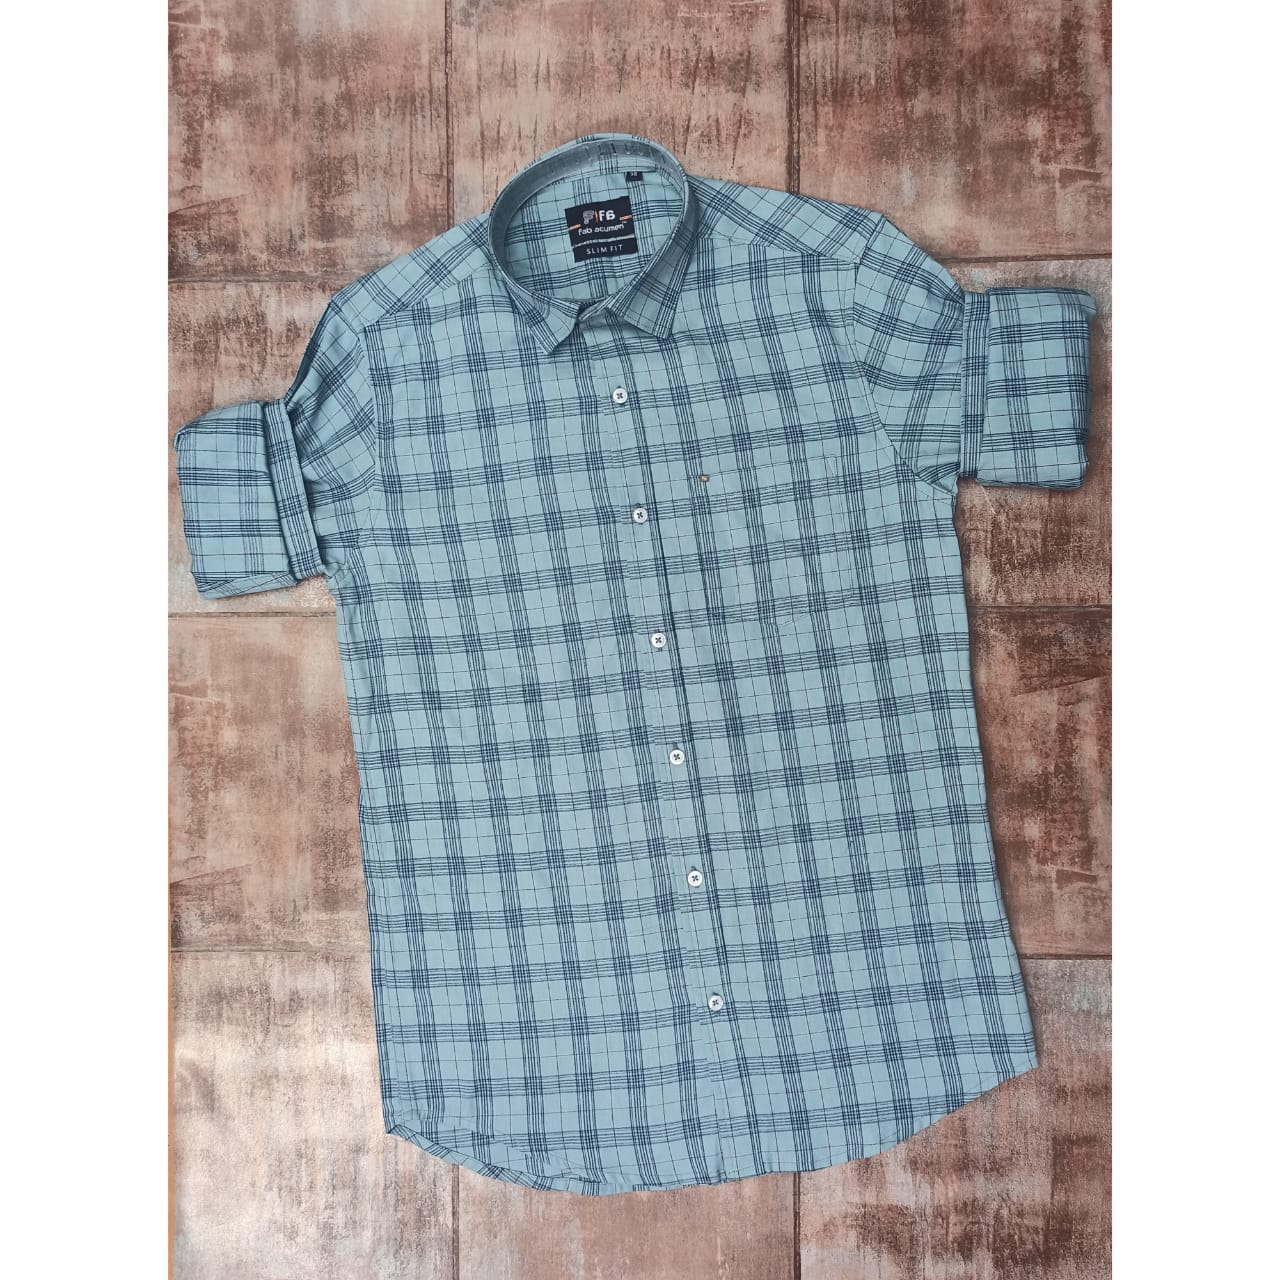 Premium Checked Casual Shirt with mask